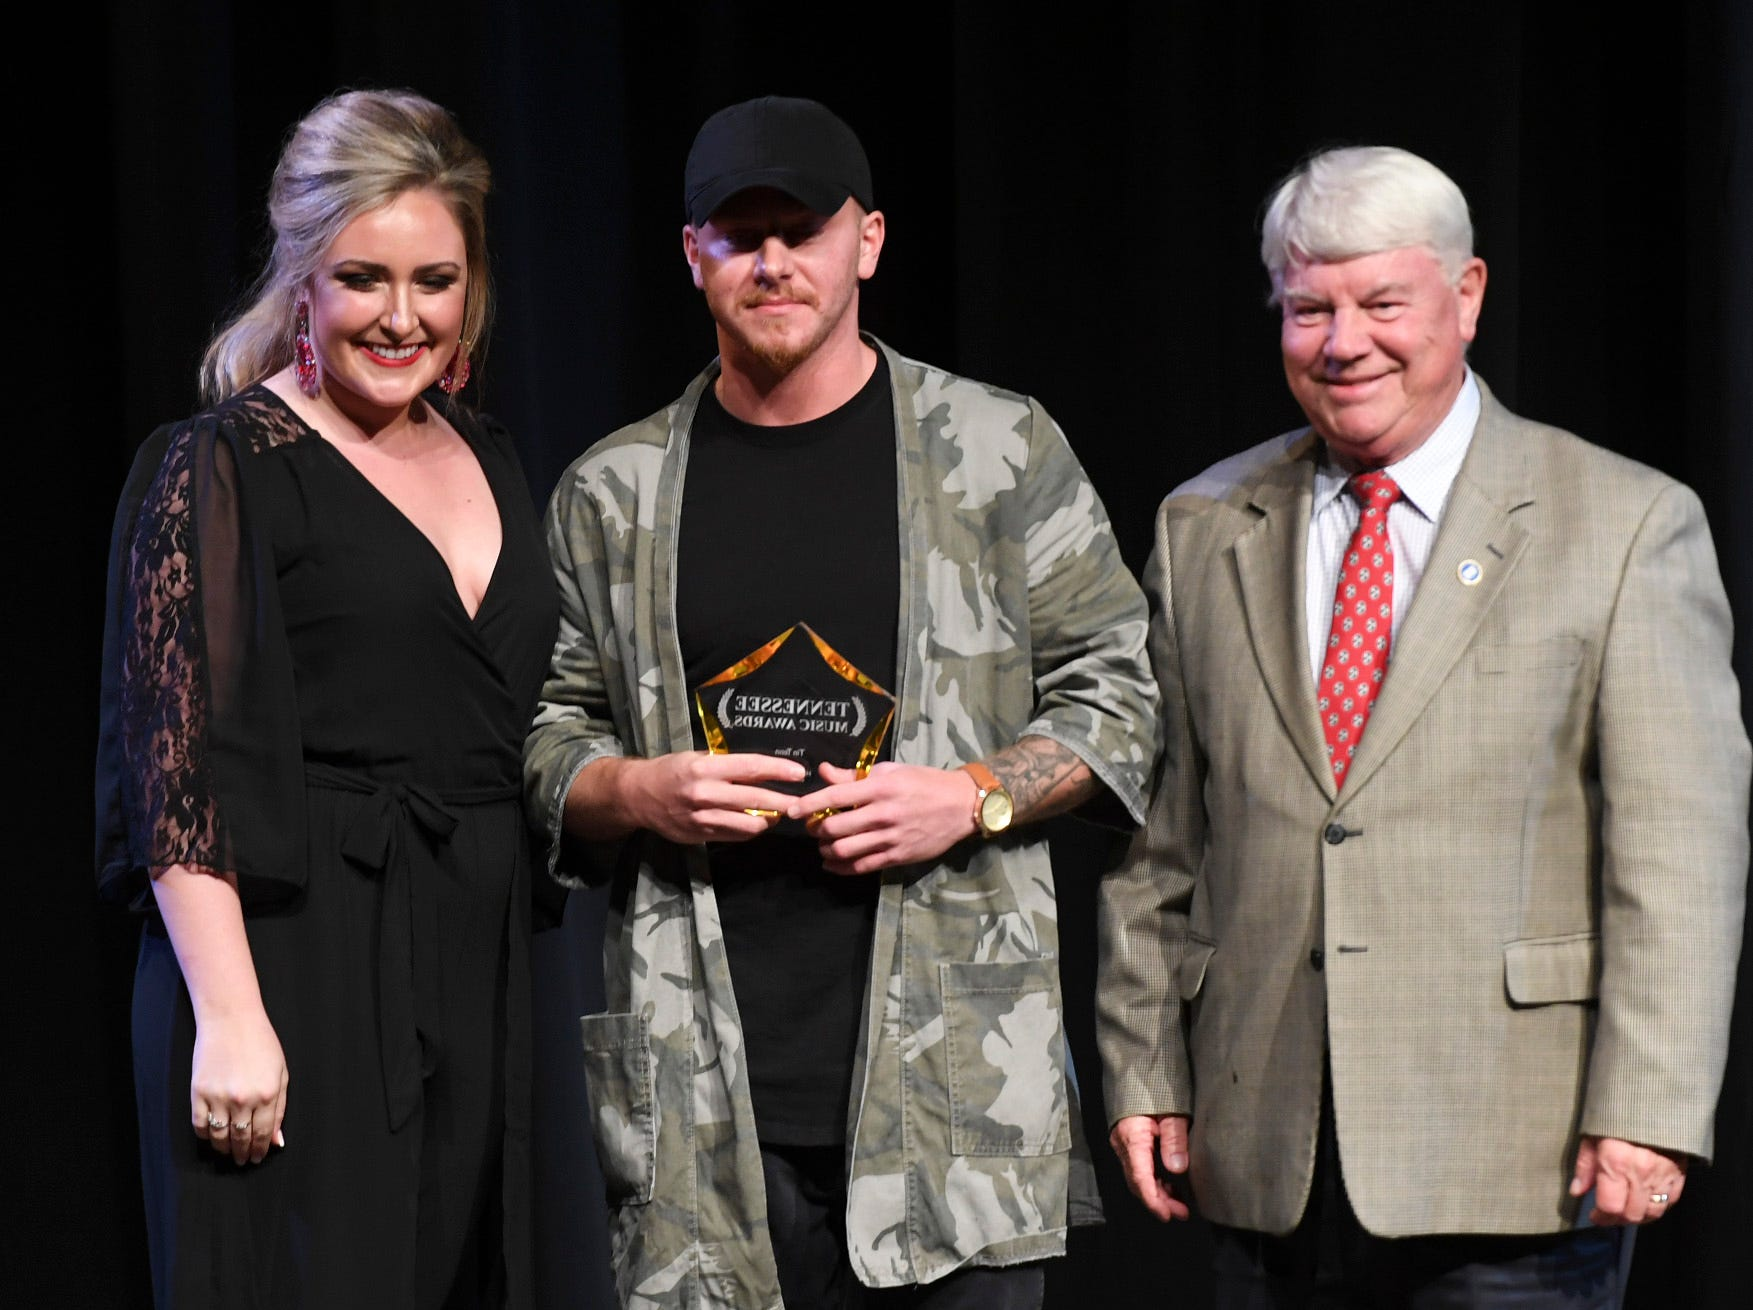 Tin Tenn was presented with the Hip Hop Artist of the Year award at the 2nd Annual Tennessee Music Awards, Monday, October 8, at University of Memphis Lambuth.